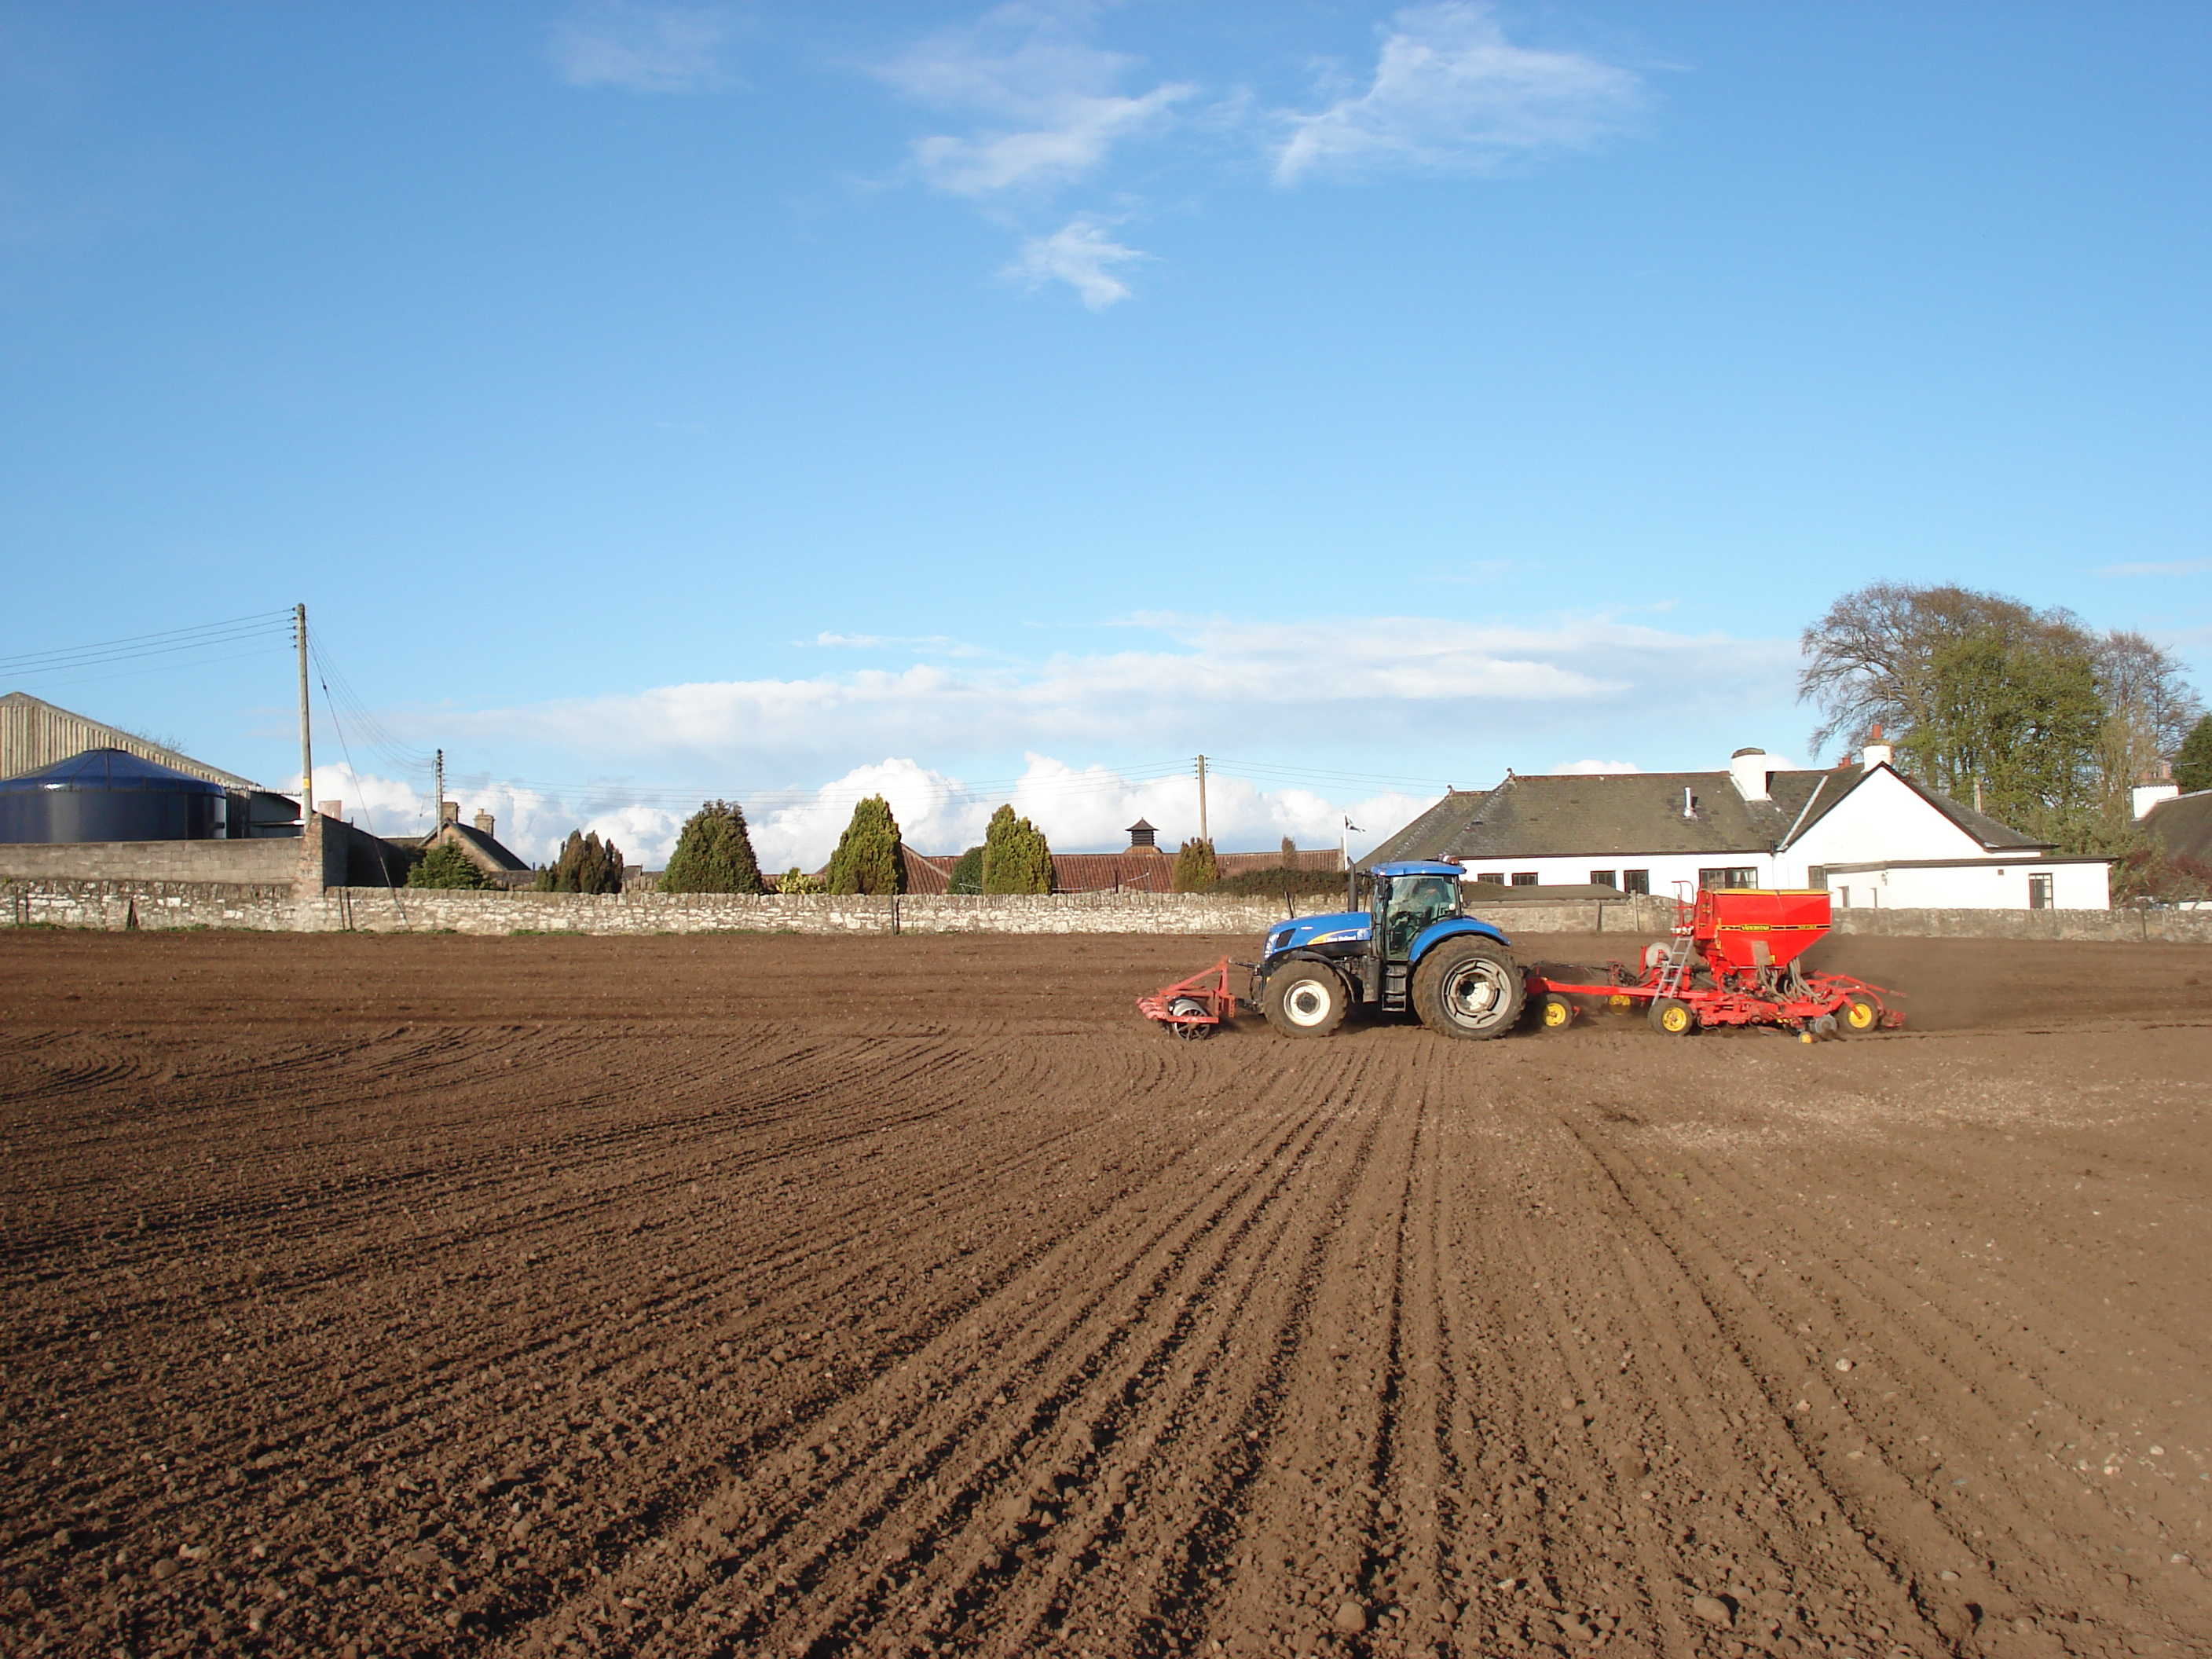 Sowing at Daftmill